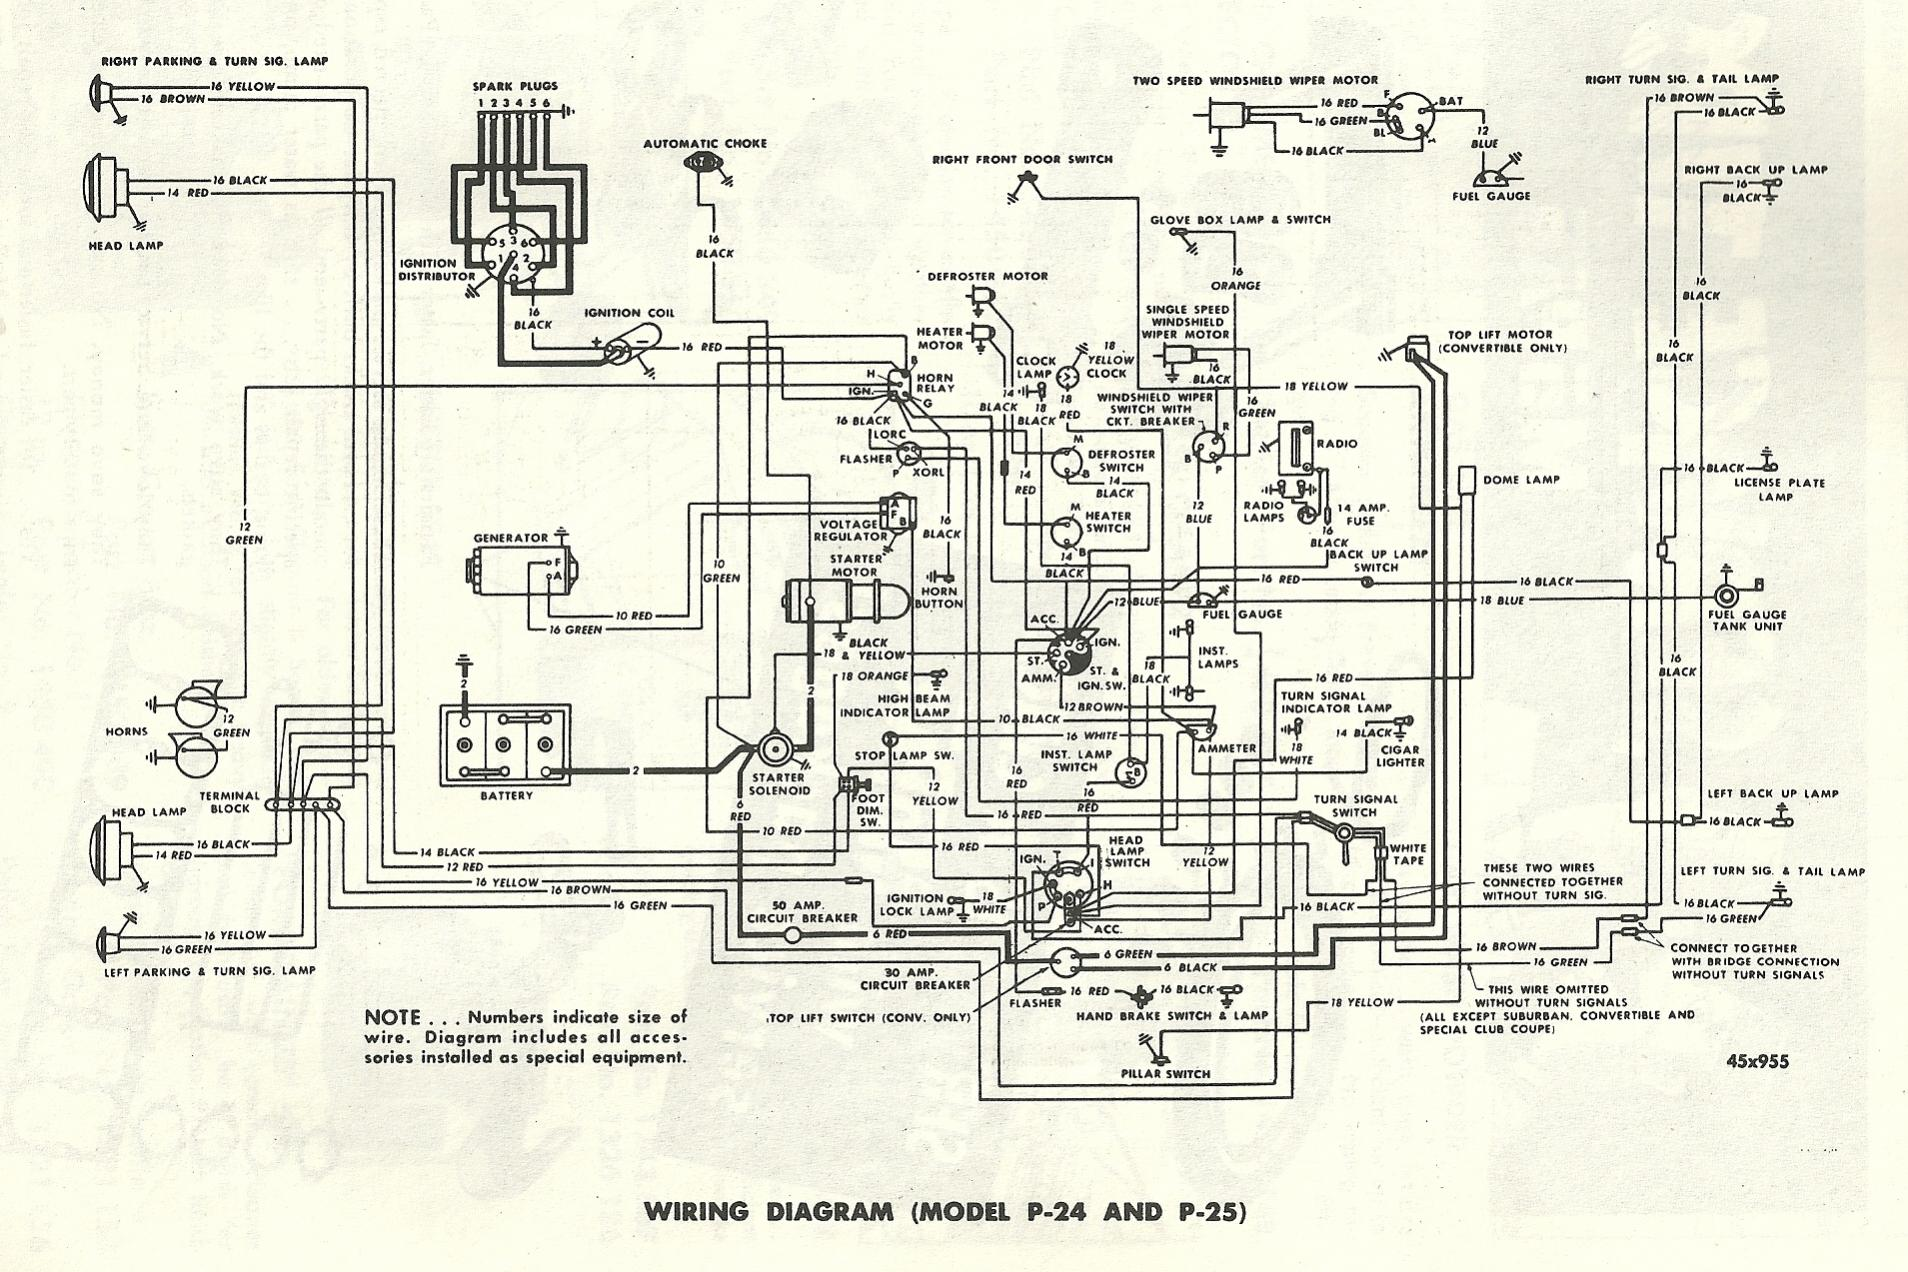 100 ideas 1951 plymouth wiring diagram on bestcoloringxmaswnload looking for a 1953 plymouth cranbrook wiring diagram the hamb sciox Gallery